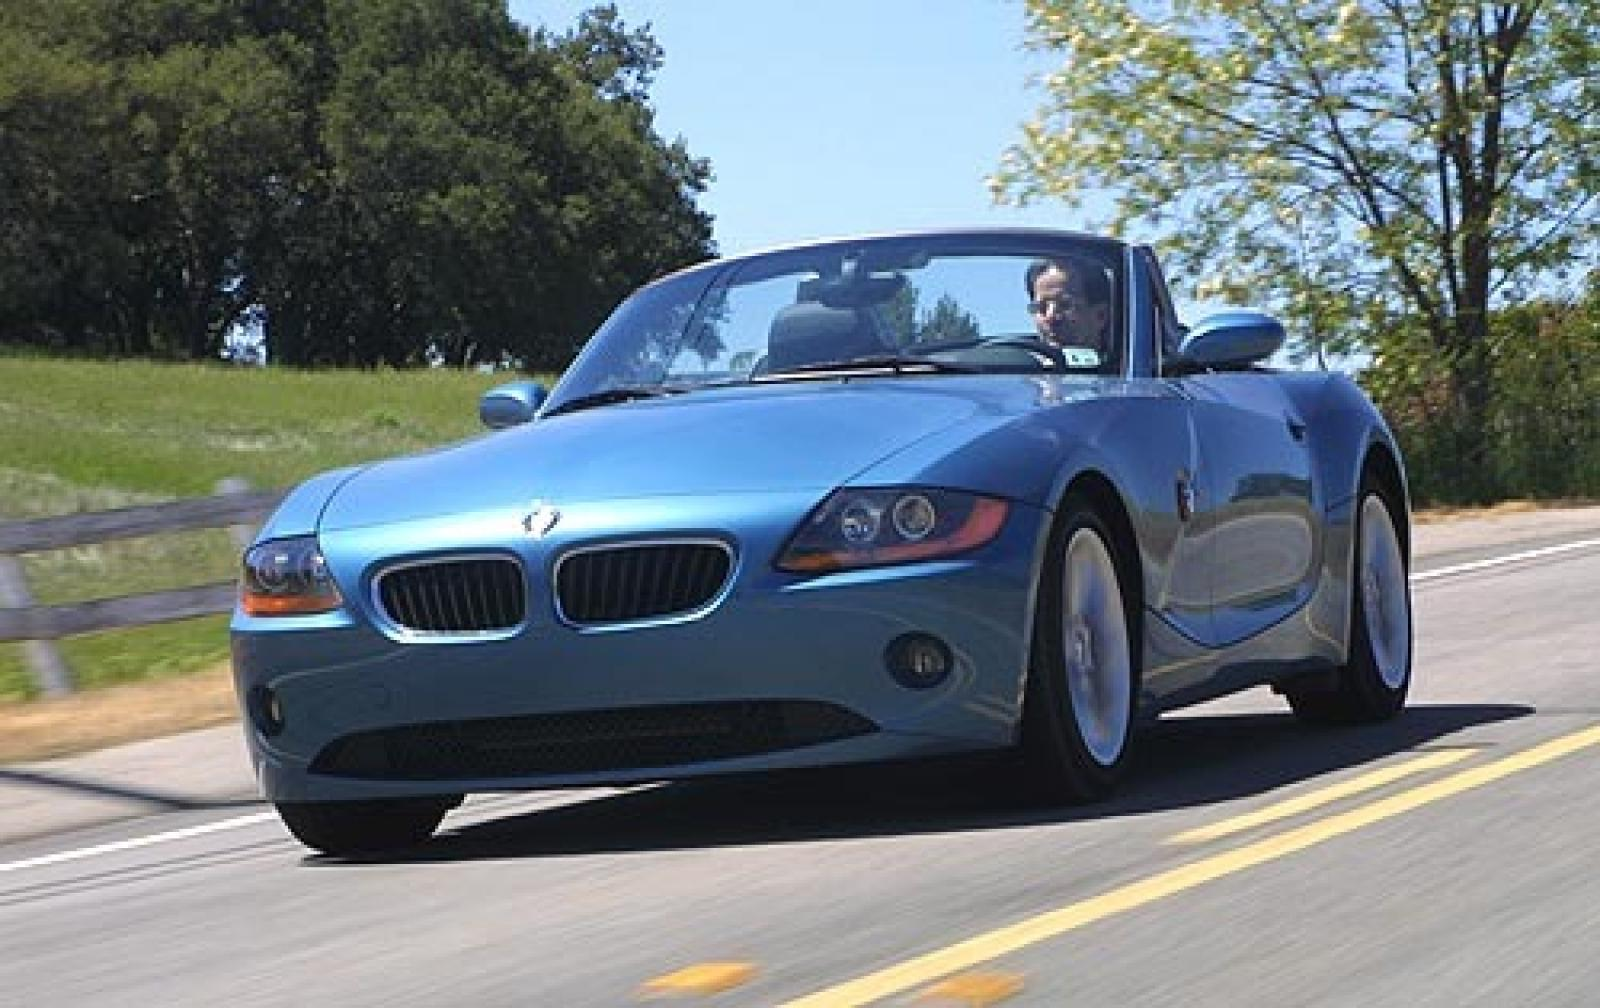 2005 Bmw Z4 Information And Photos Zombiedrive